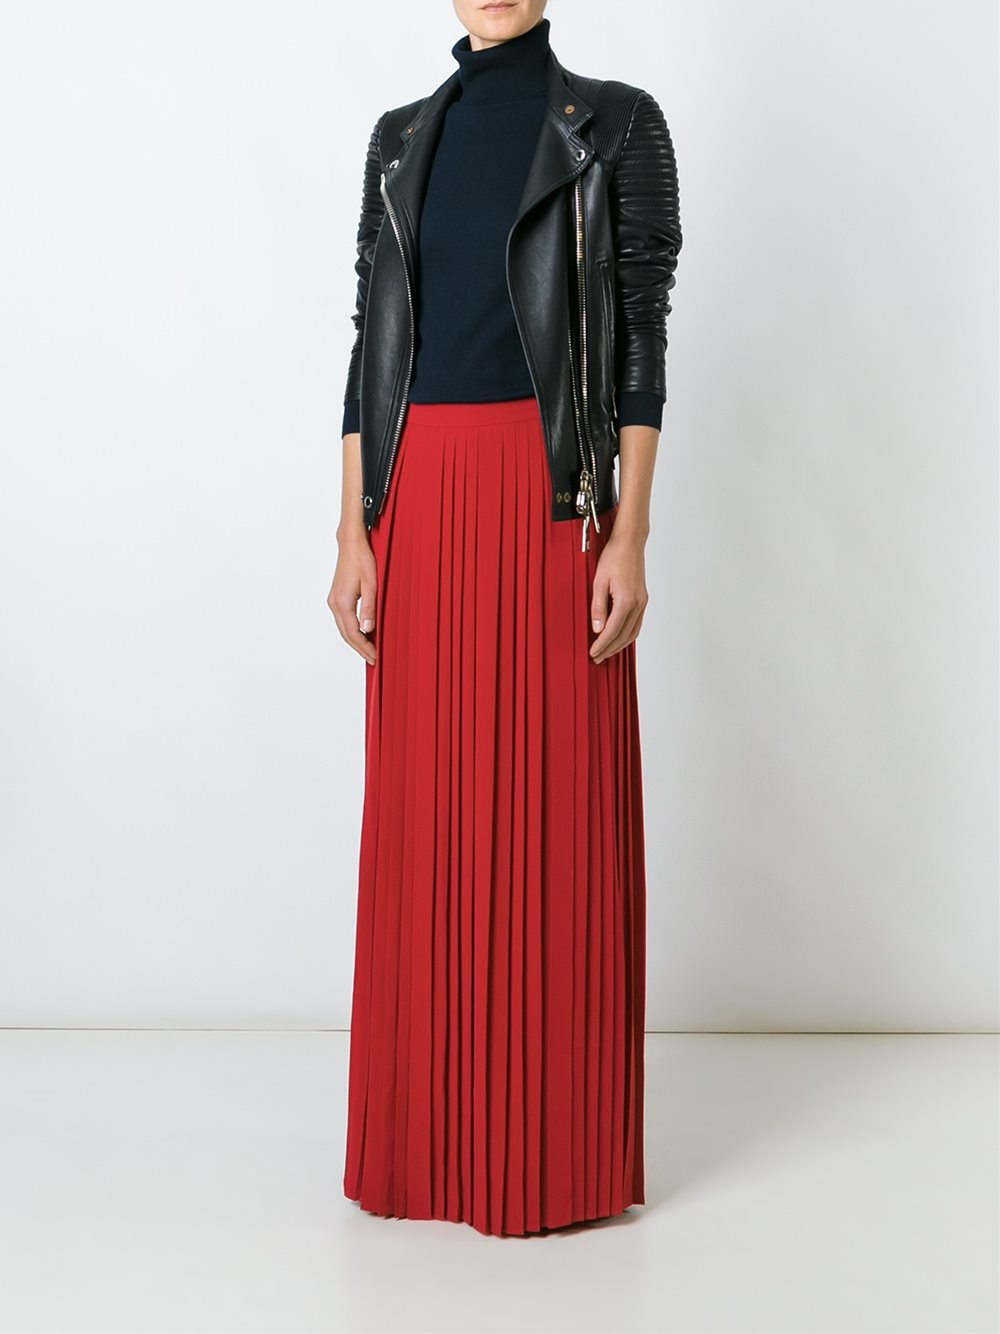 Tory burch long pleated skirt in black lyst for Tory burch fashion island